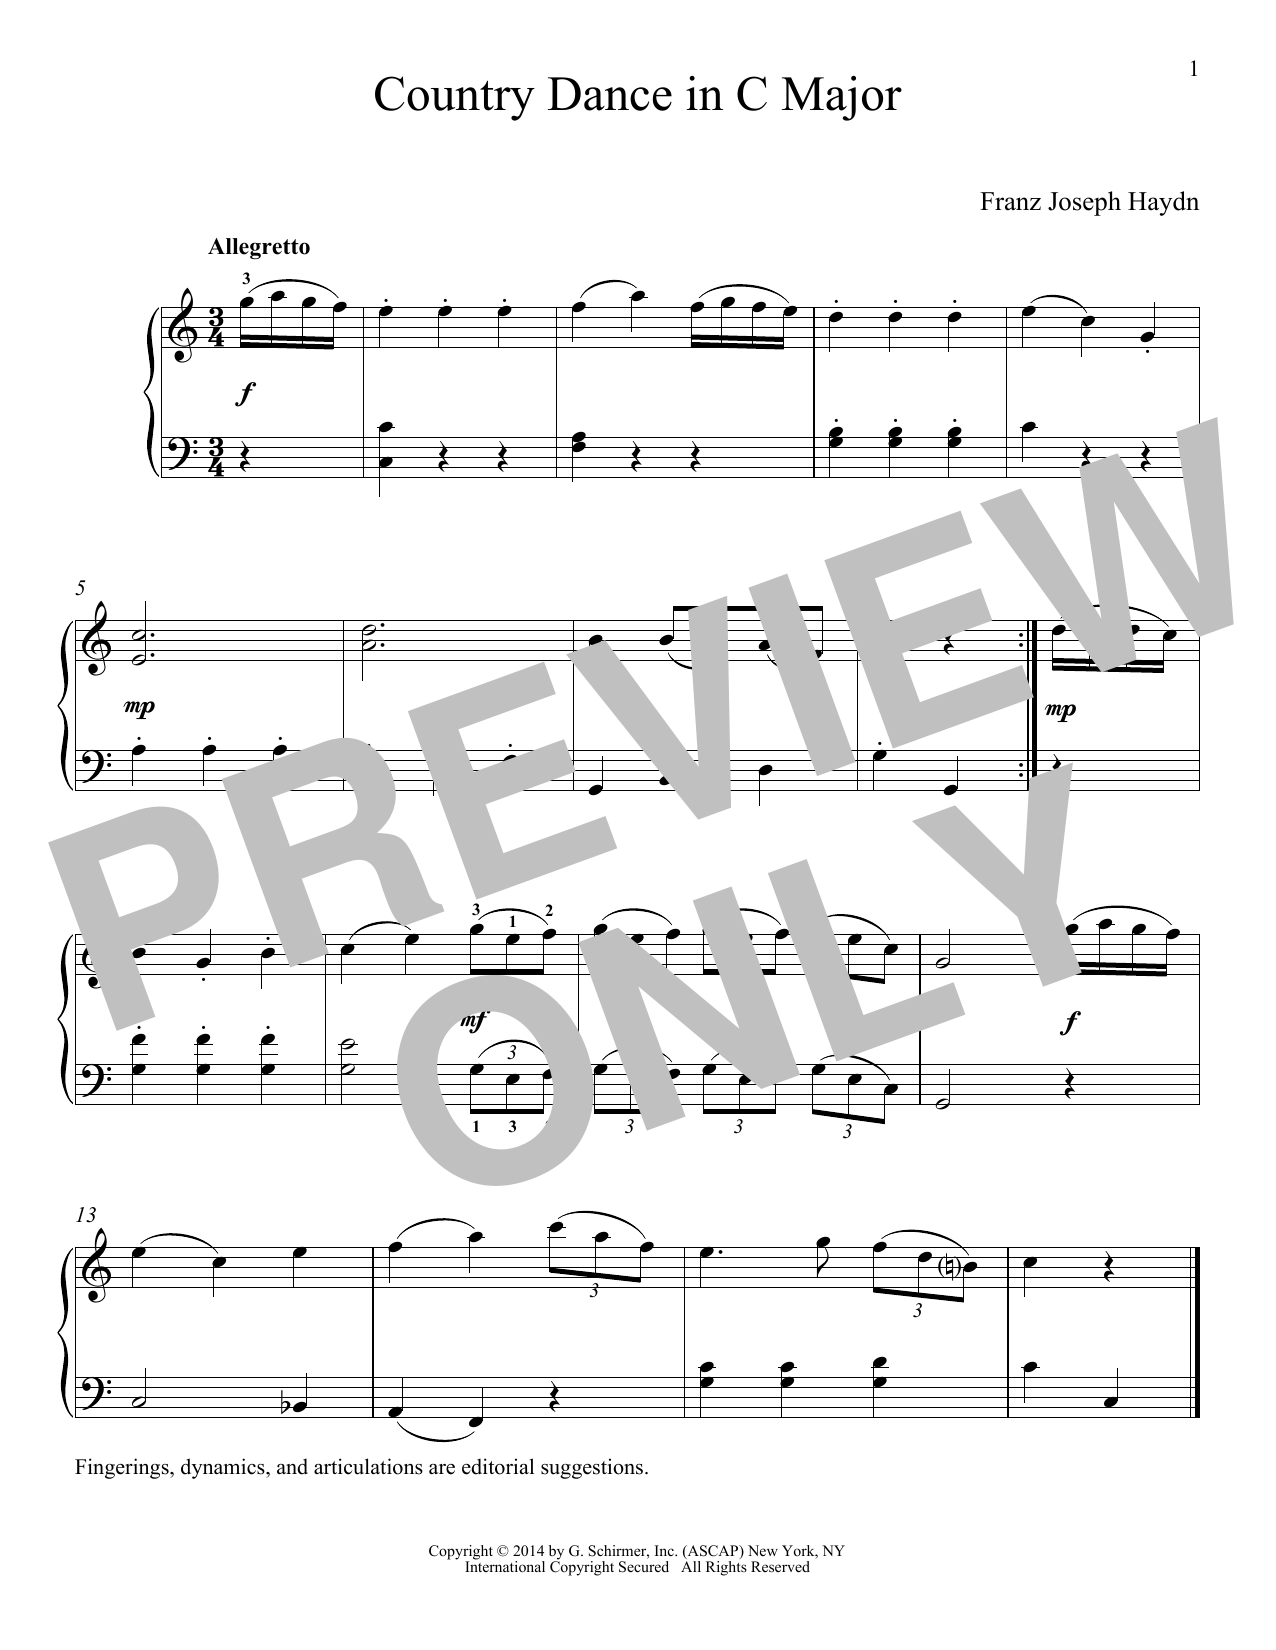 Franz Joseph Haydn Country Dance In C Major sheet music notes and chords. Download Printable PDF.